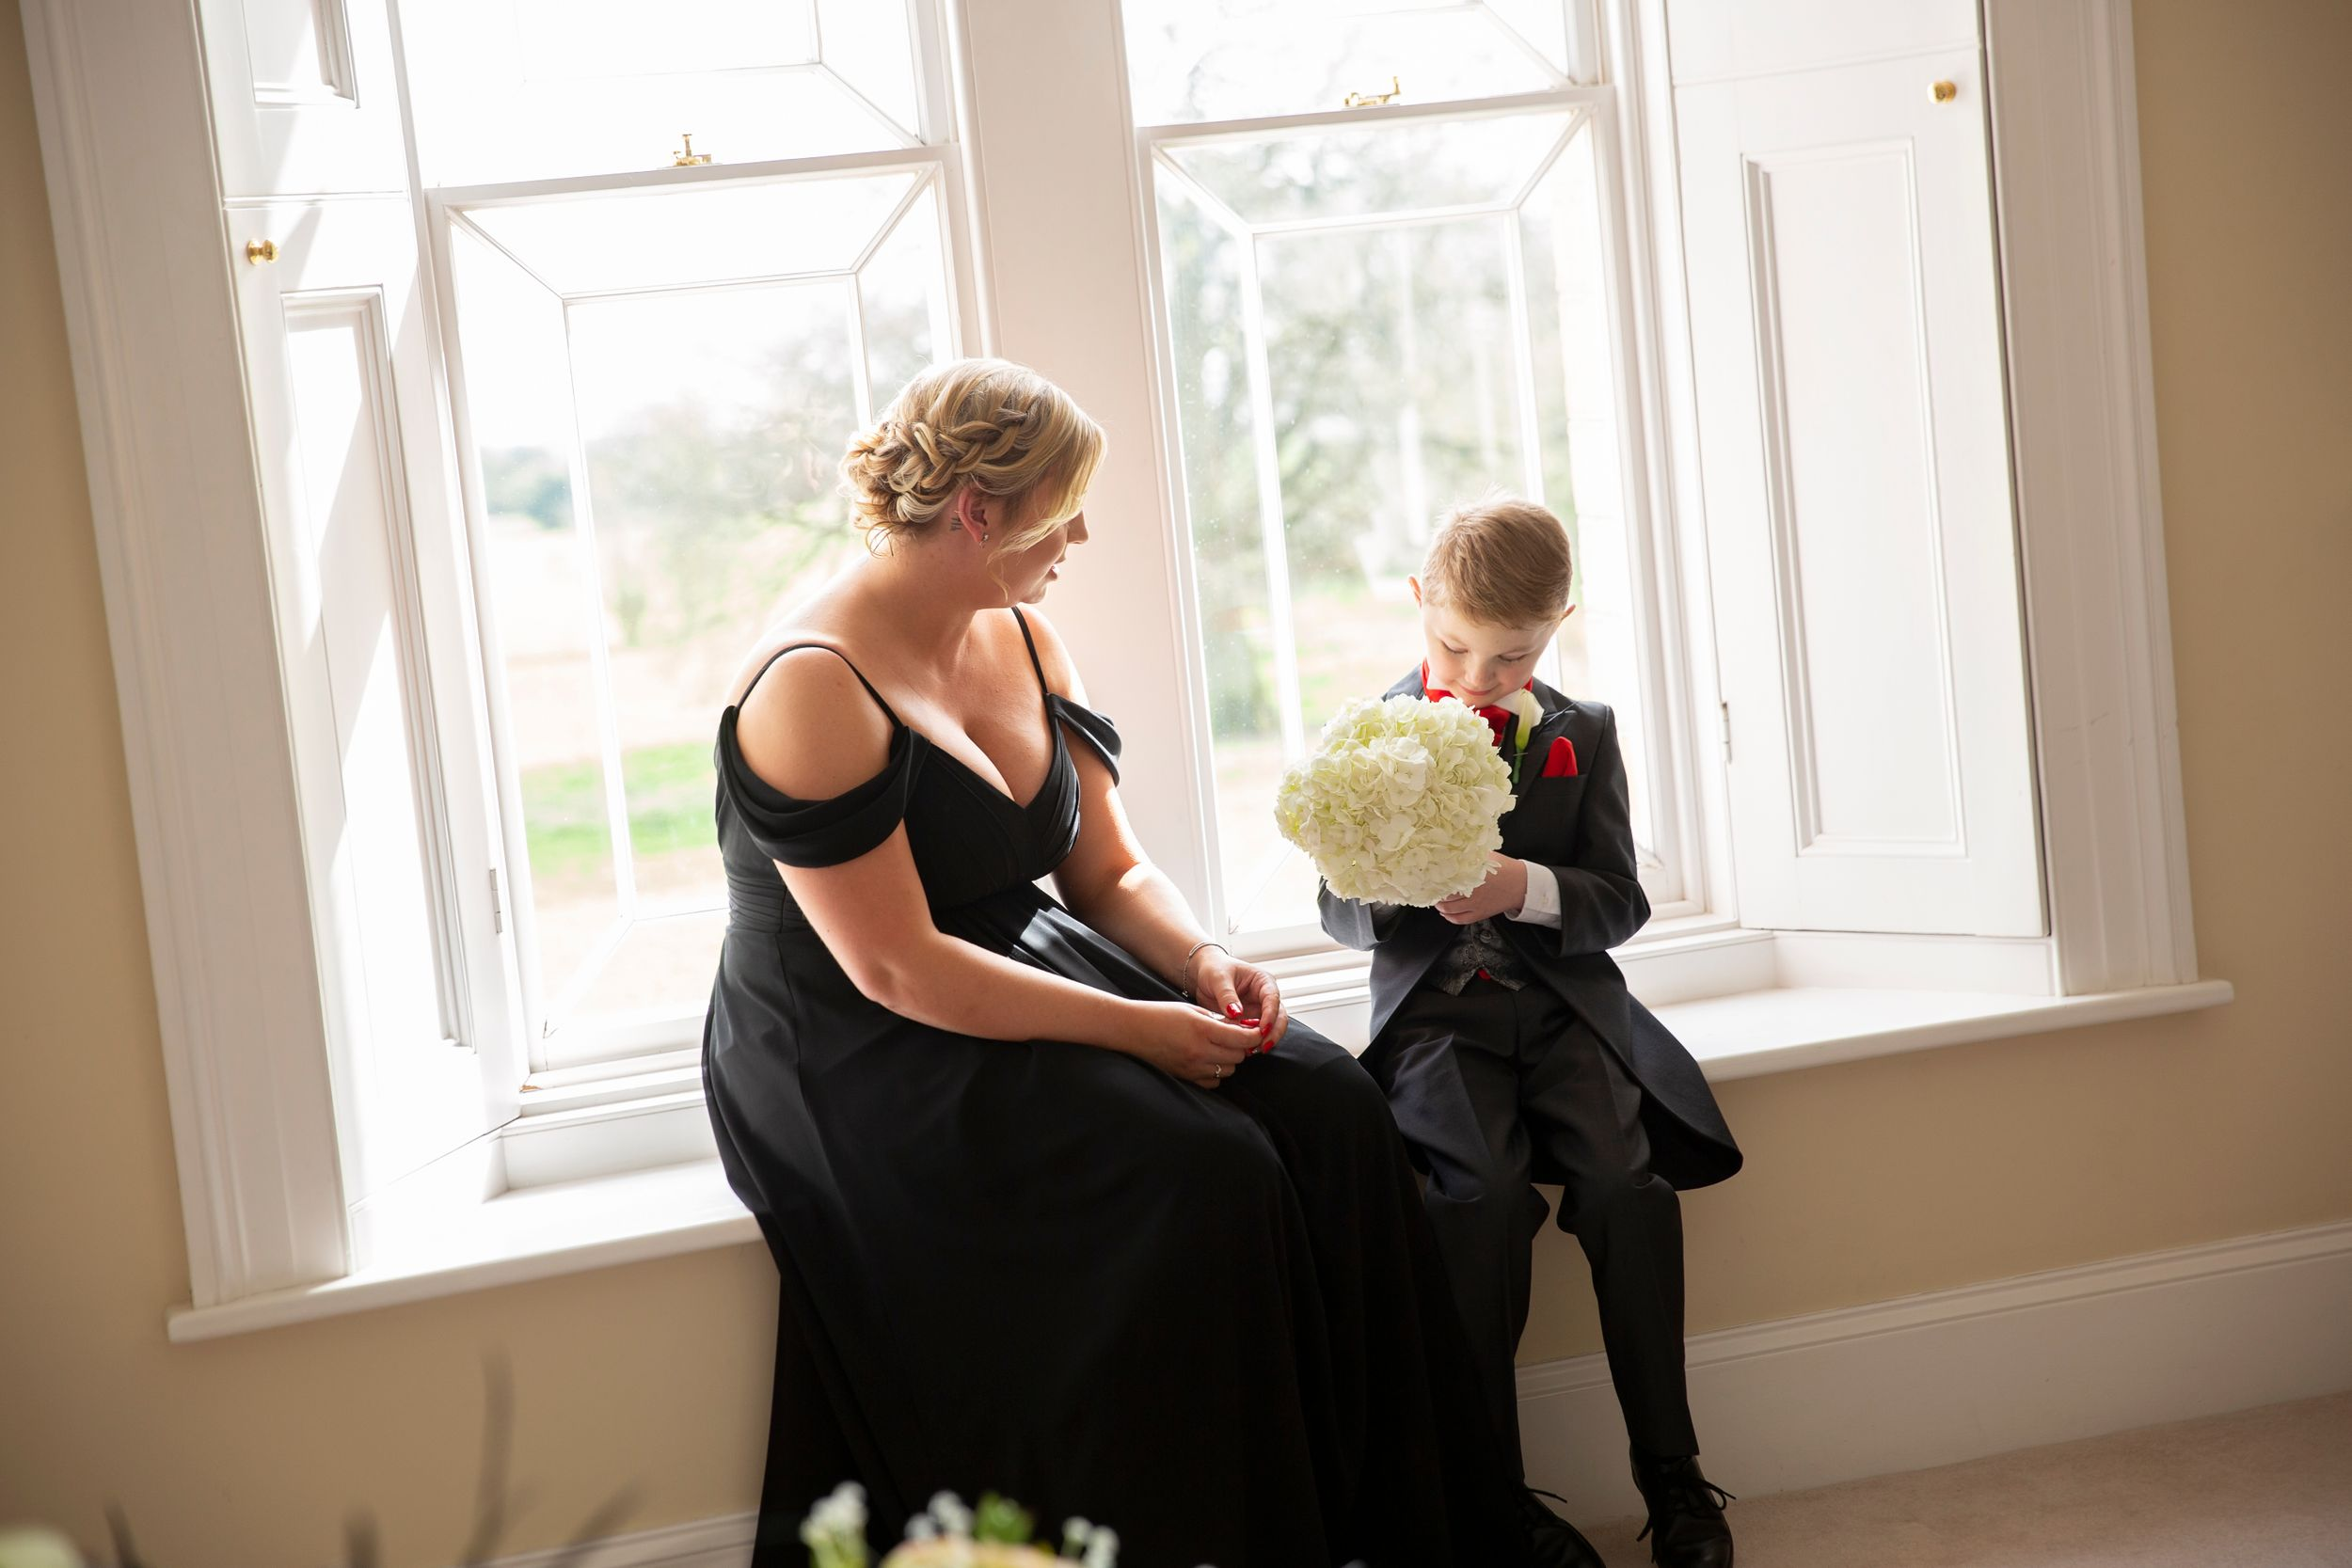 charming candid moment bridesmaid with her son at window in St Tewdrics Wedding